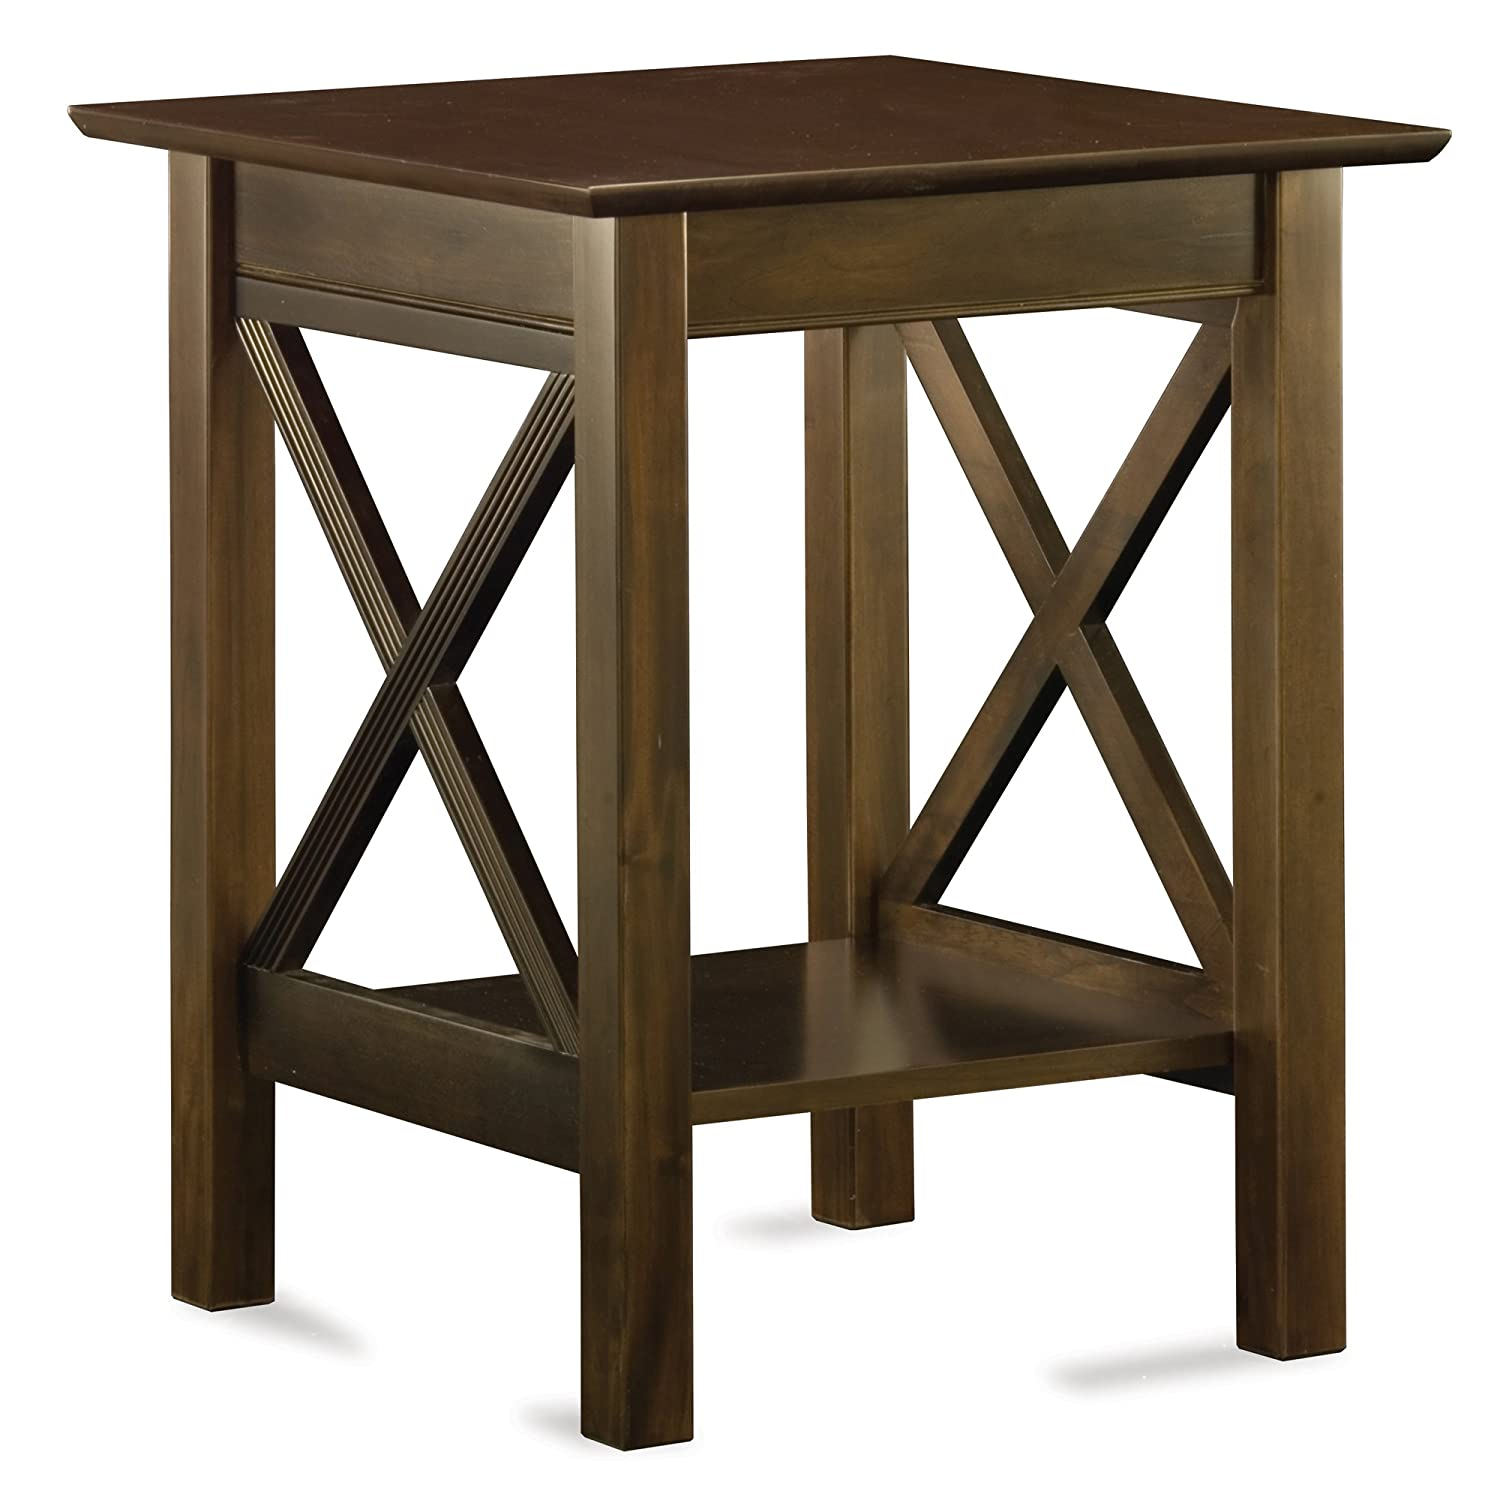 designs table wood series furniture in printertable products tci diw printer